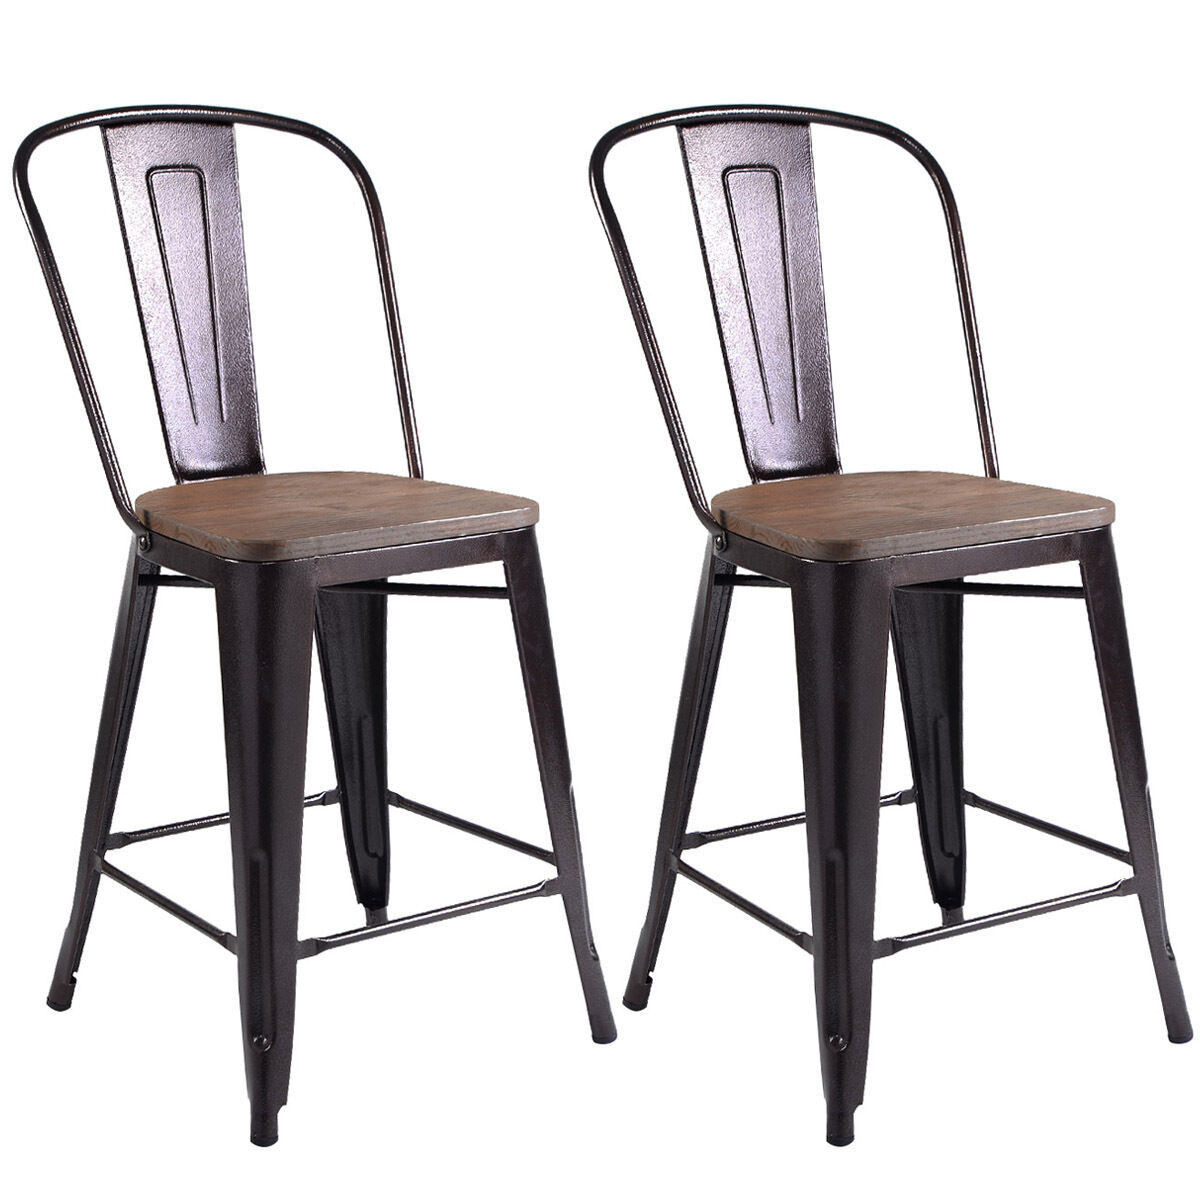 Picture 1 of 10 ...  sc 1 st  eBay & Costway Copper Set of 2 Metal Wood Counter Stool Kitchen Dining ... islam-shia.org